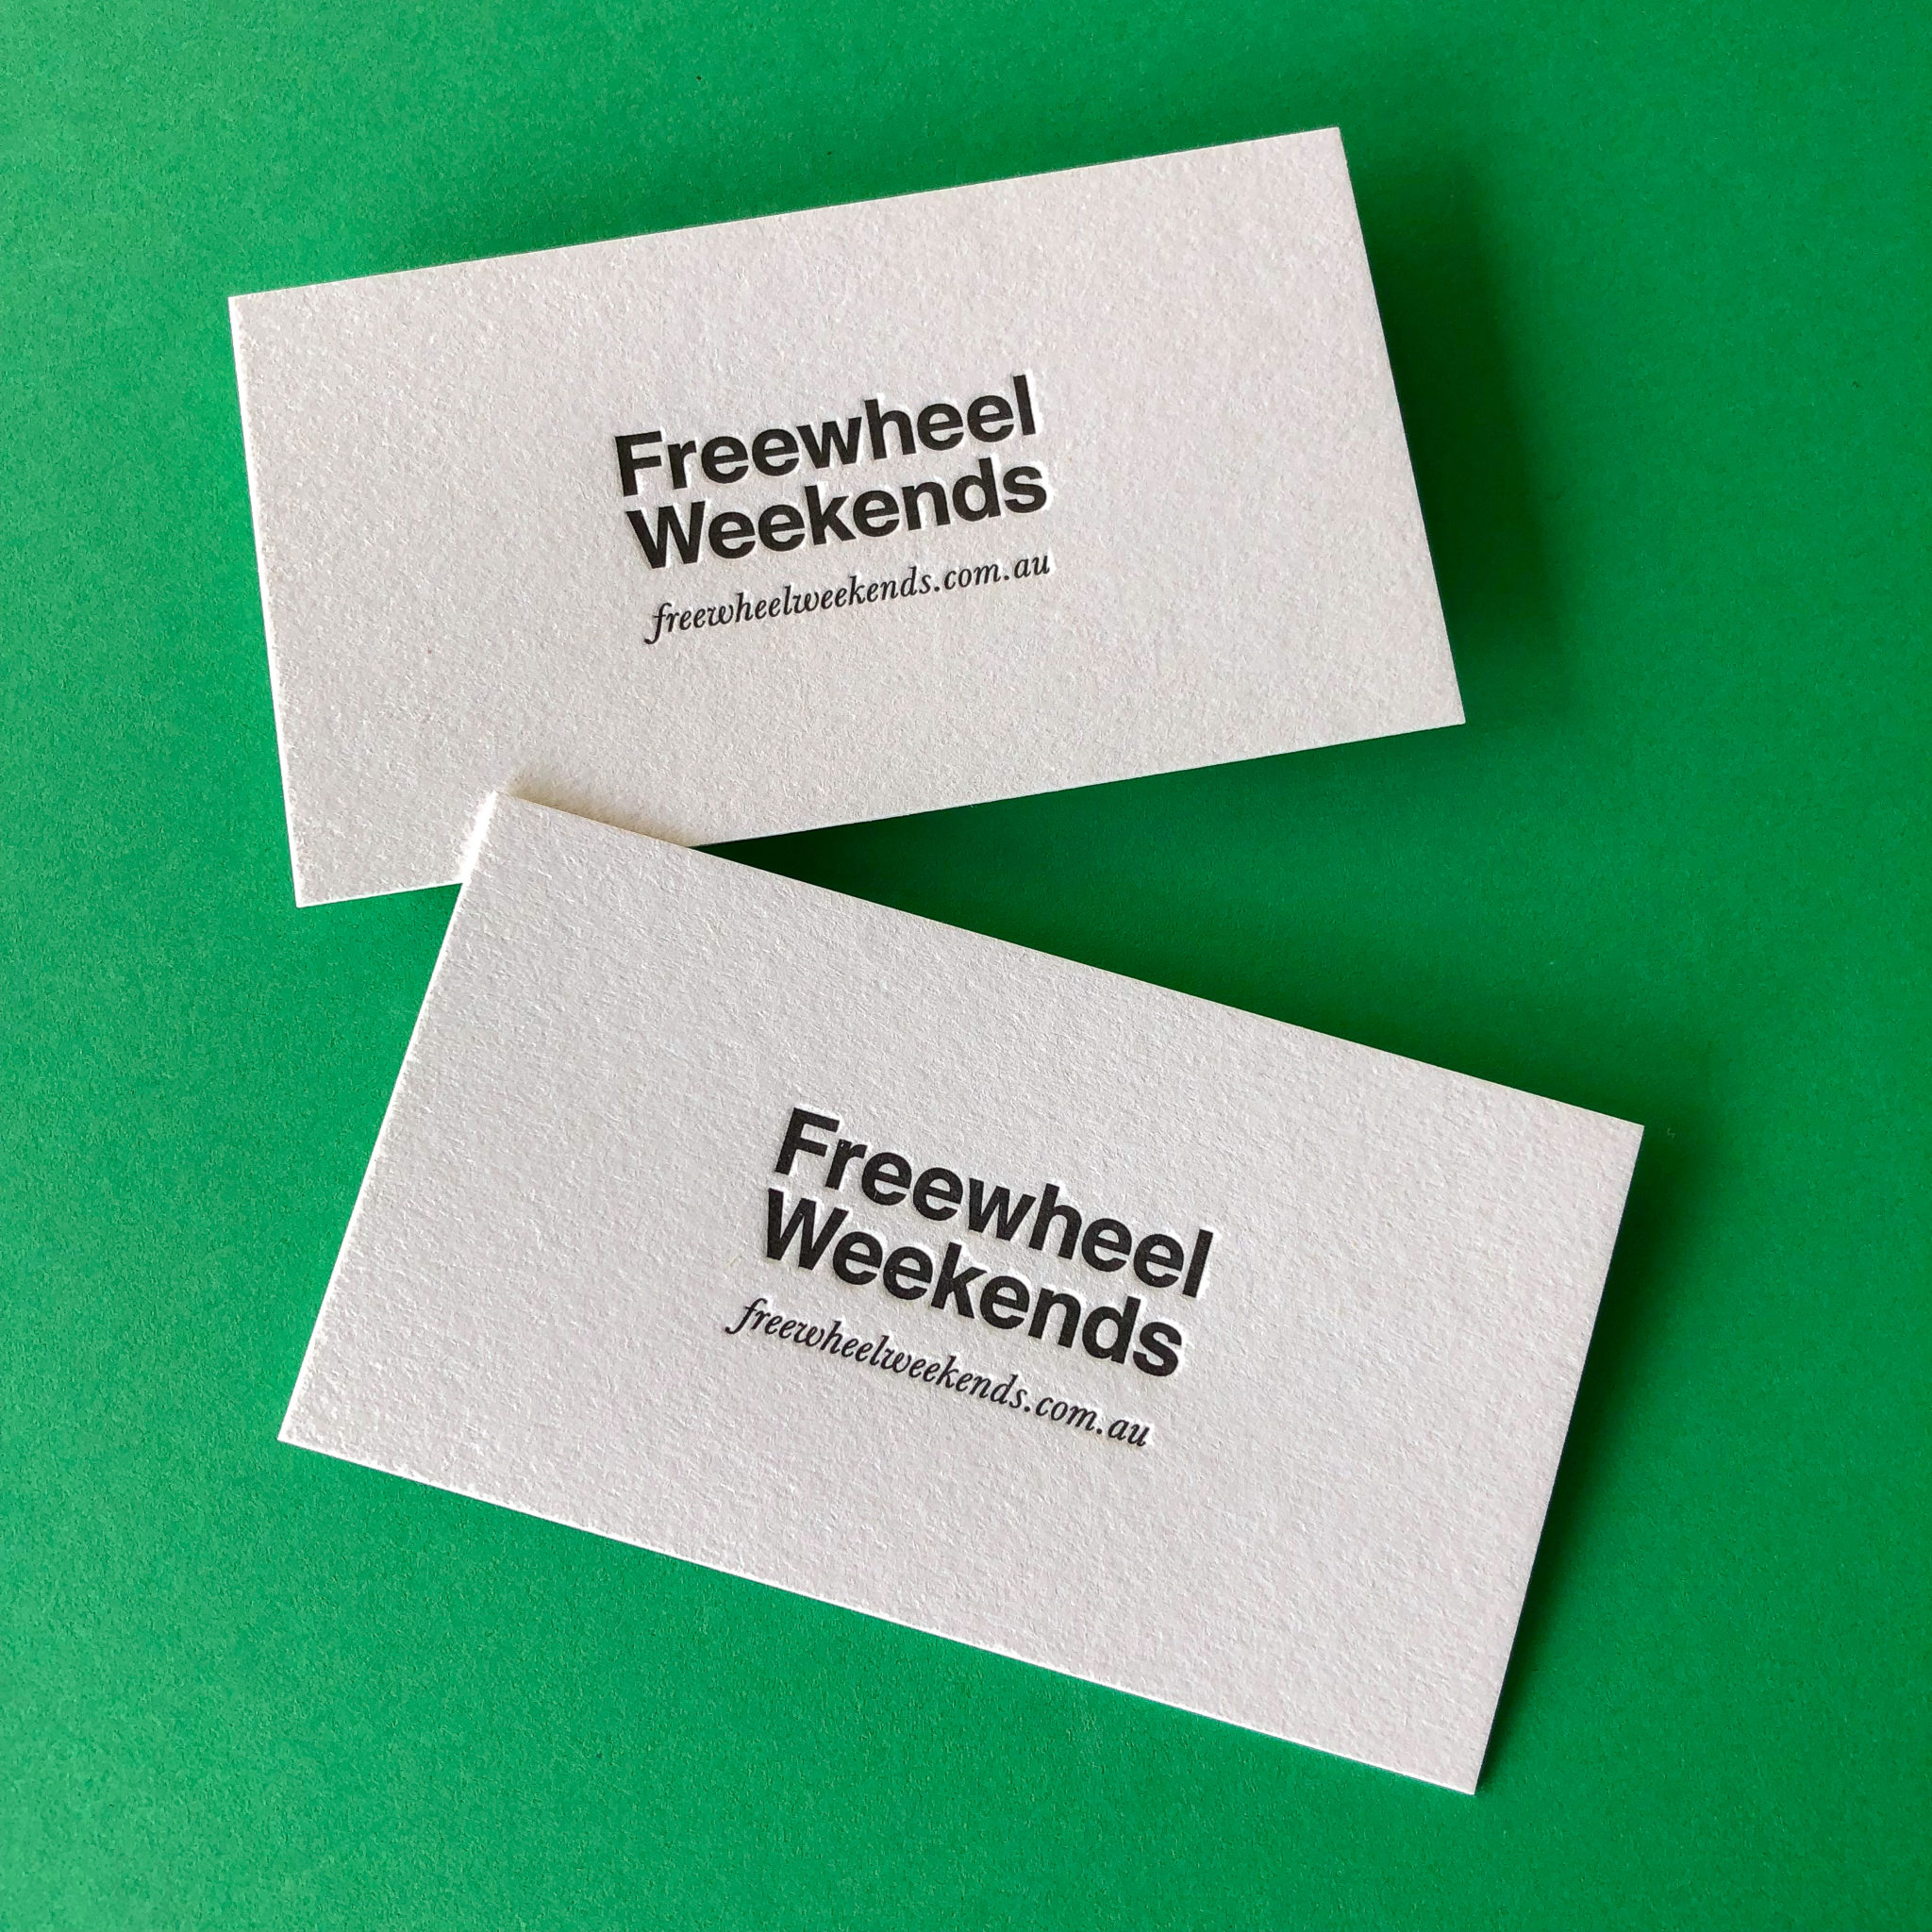 Letterpress standard business cards for Freewheel Weekends on Stephen 1